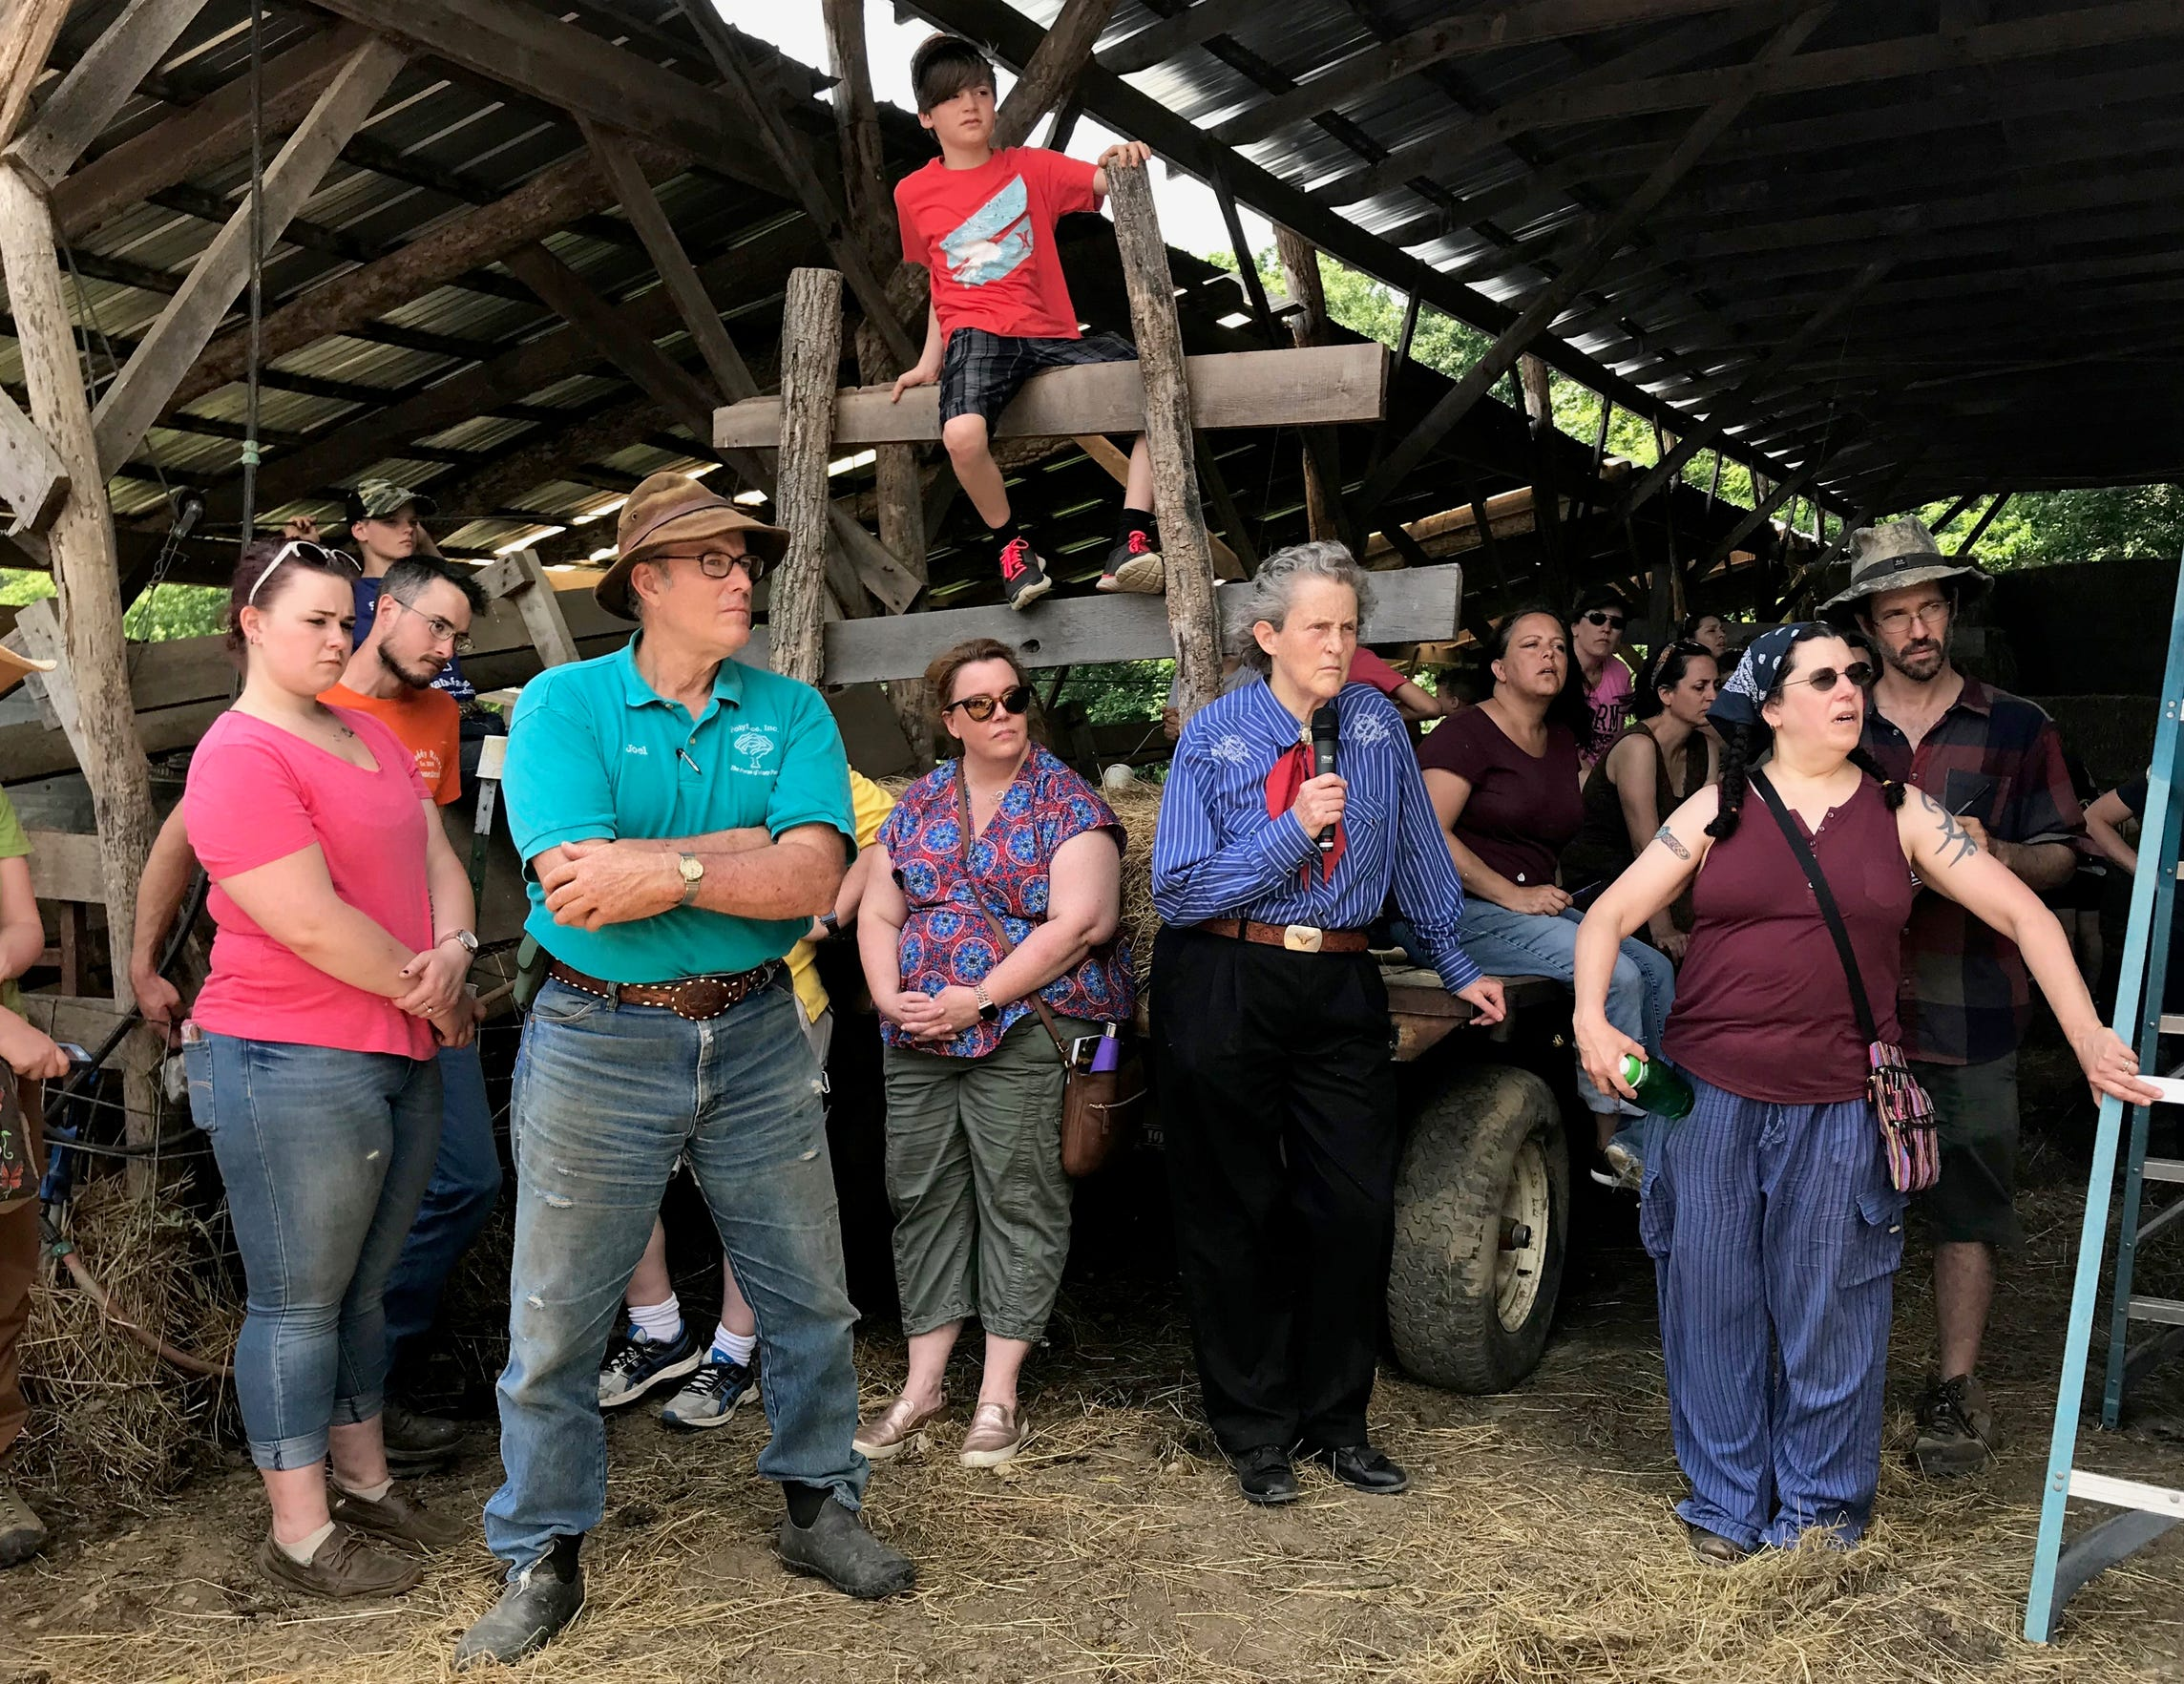 A day with Temple Grandin and owner of Polyface Farms Joel Salatin on Wednesday, May 29, 2019 in Swoope, Virginia. Photograph taken inside the compost barn on the farm.